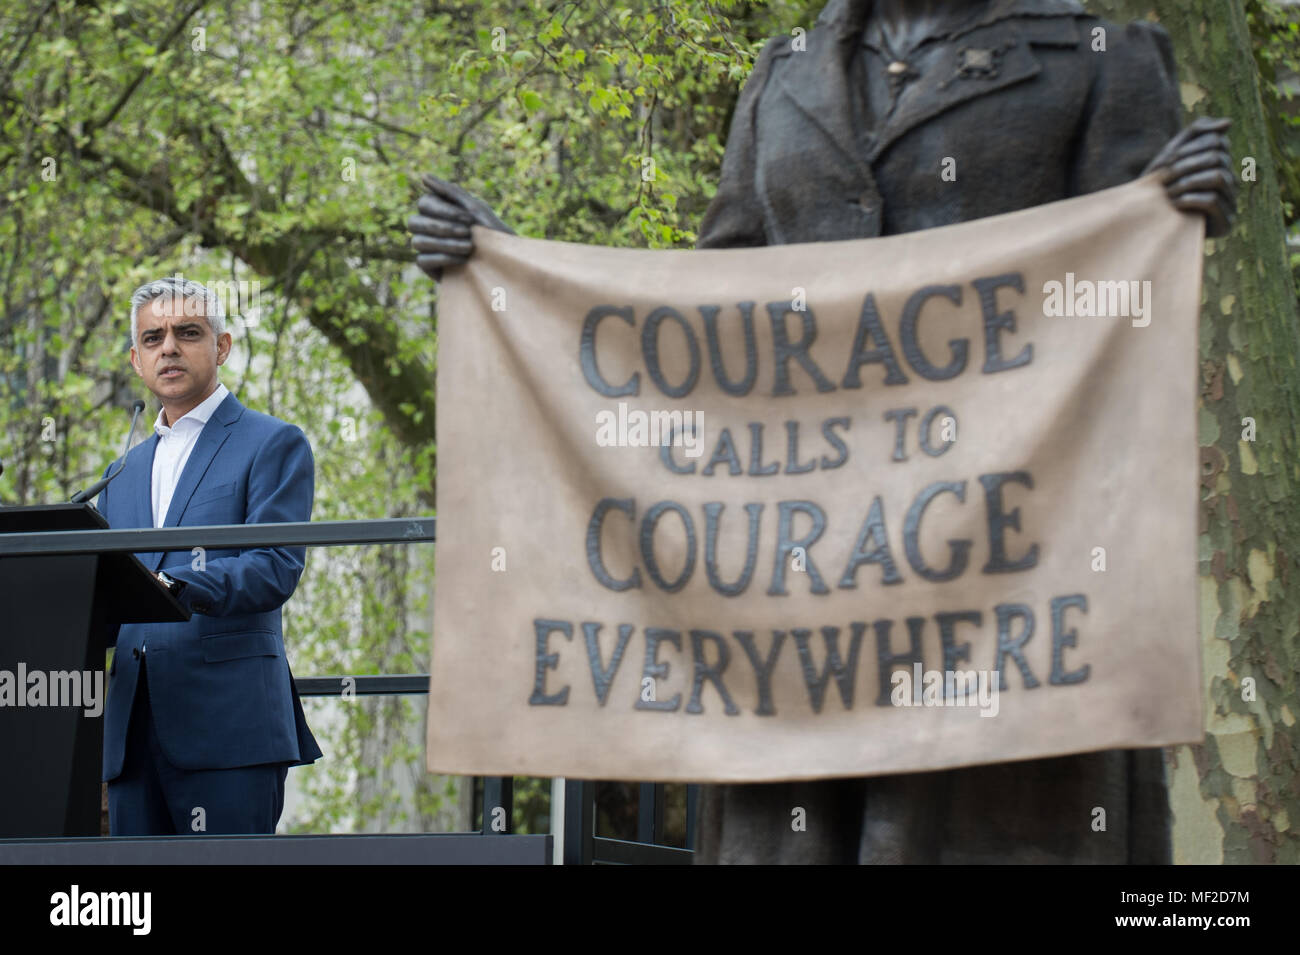 London, UK. 24th April, 2018. Mayor of London, Sadiq Khan, speaks during the unveiling ceremony of Millicent Fawcett in Parliament Square. The first statue of a woman in Parliament Square joins the line-up of male figures to mark the centenary of women's suffrage in Britain - two years after the campaign to get female representation outside the Palace of Westminster began. Credit: Guy Corbishley/Alamy Live News - Stock Image